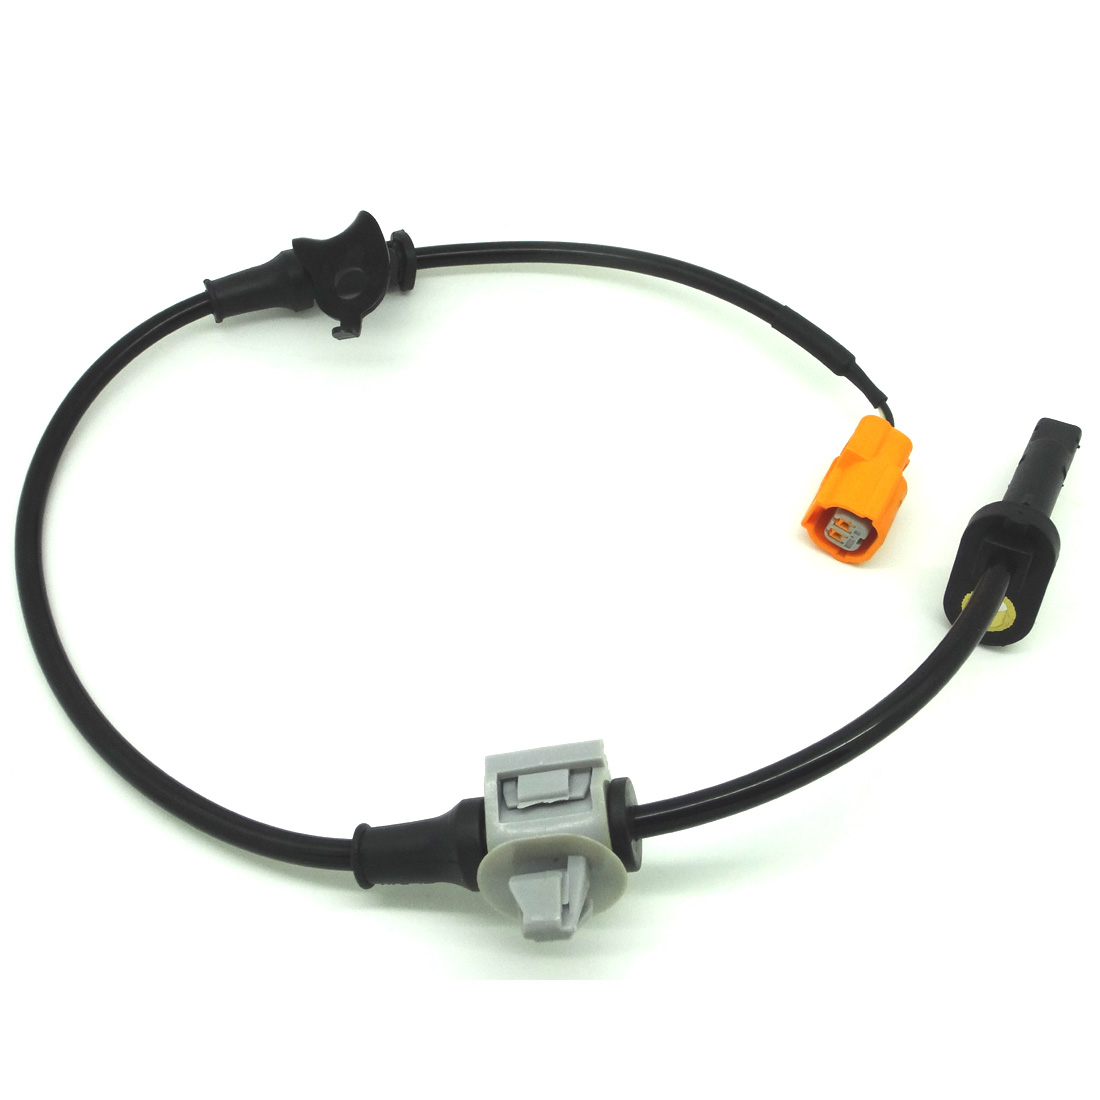 ABS WHEEL SPEED SENSOR For FITS 2004-2008 ACURA TSX REAR